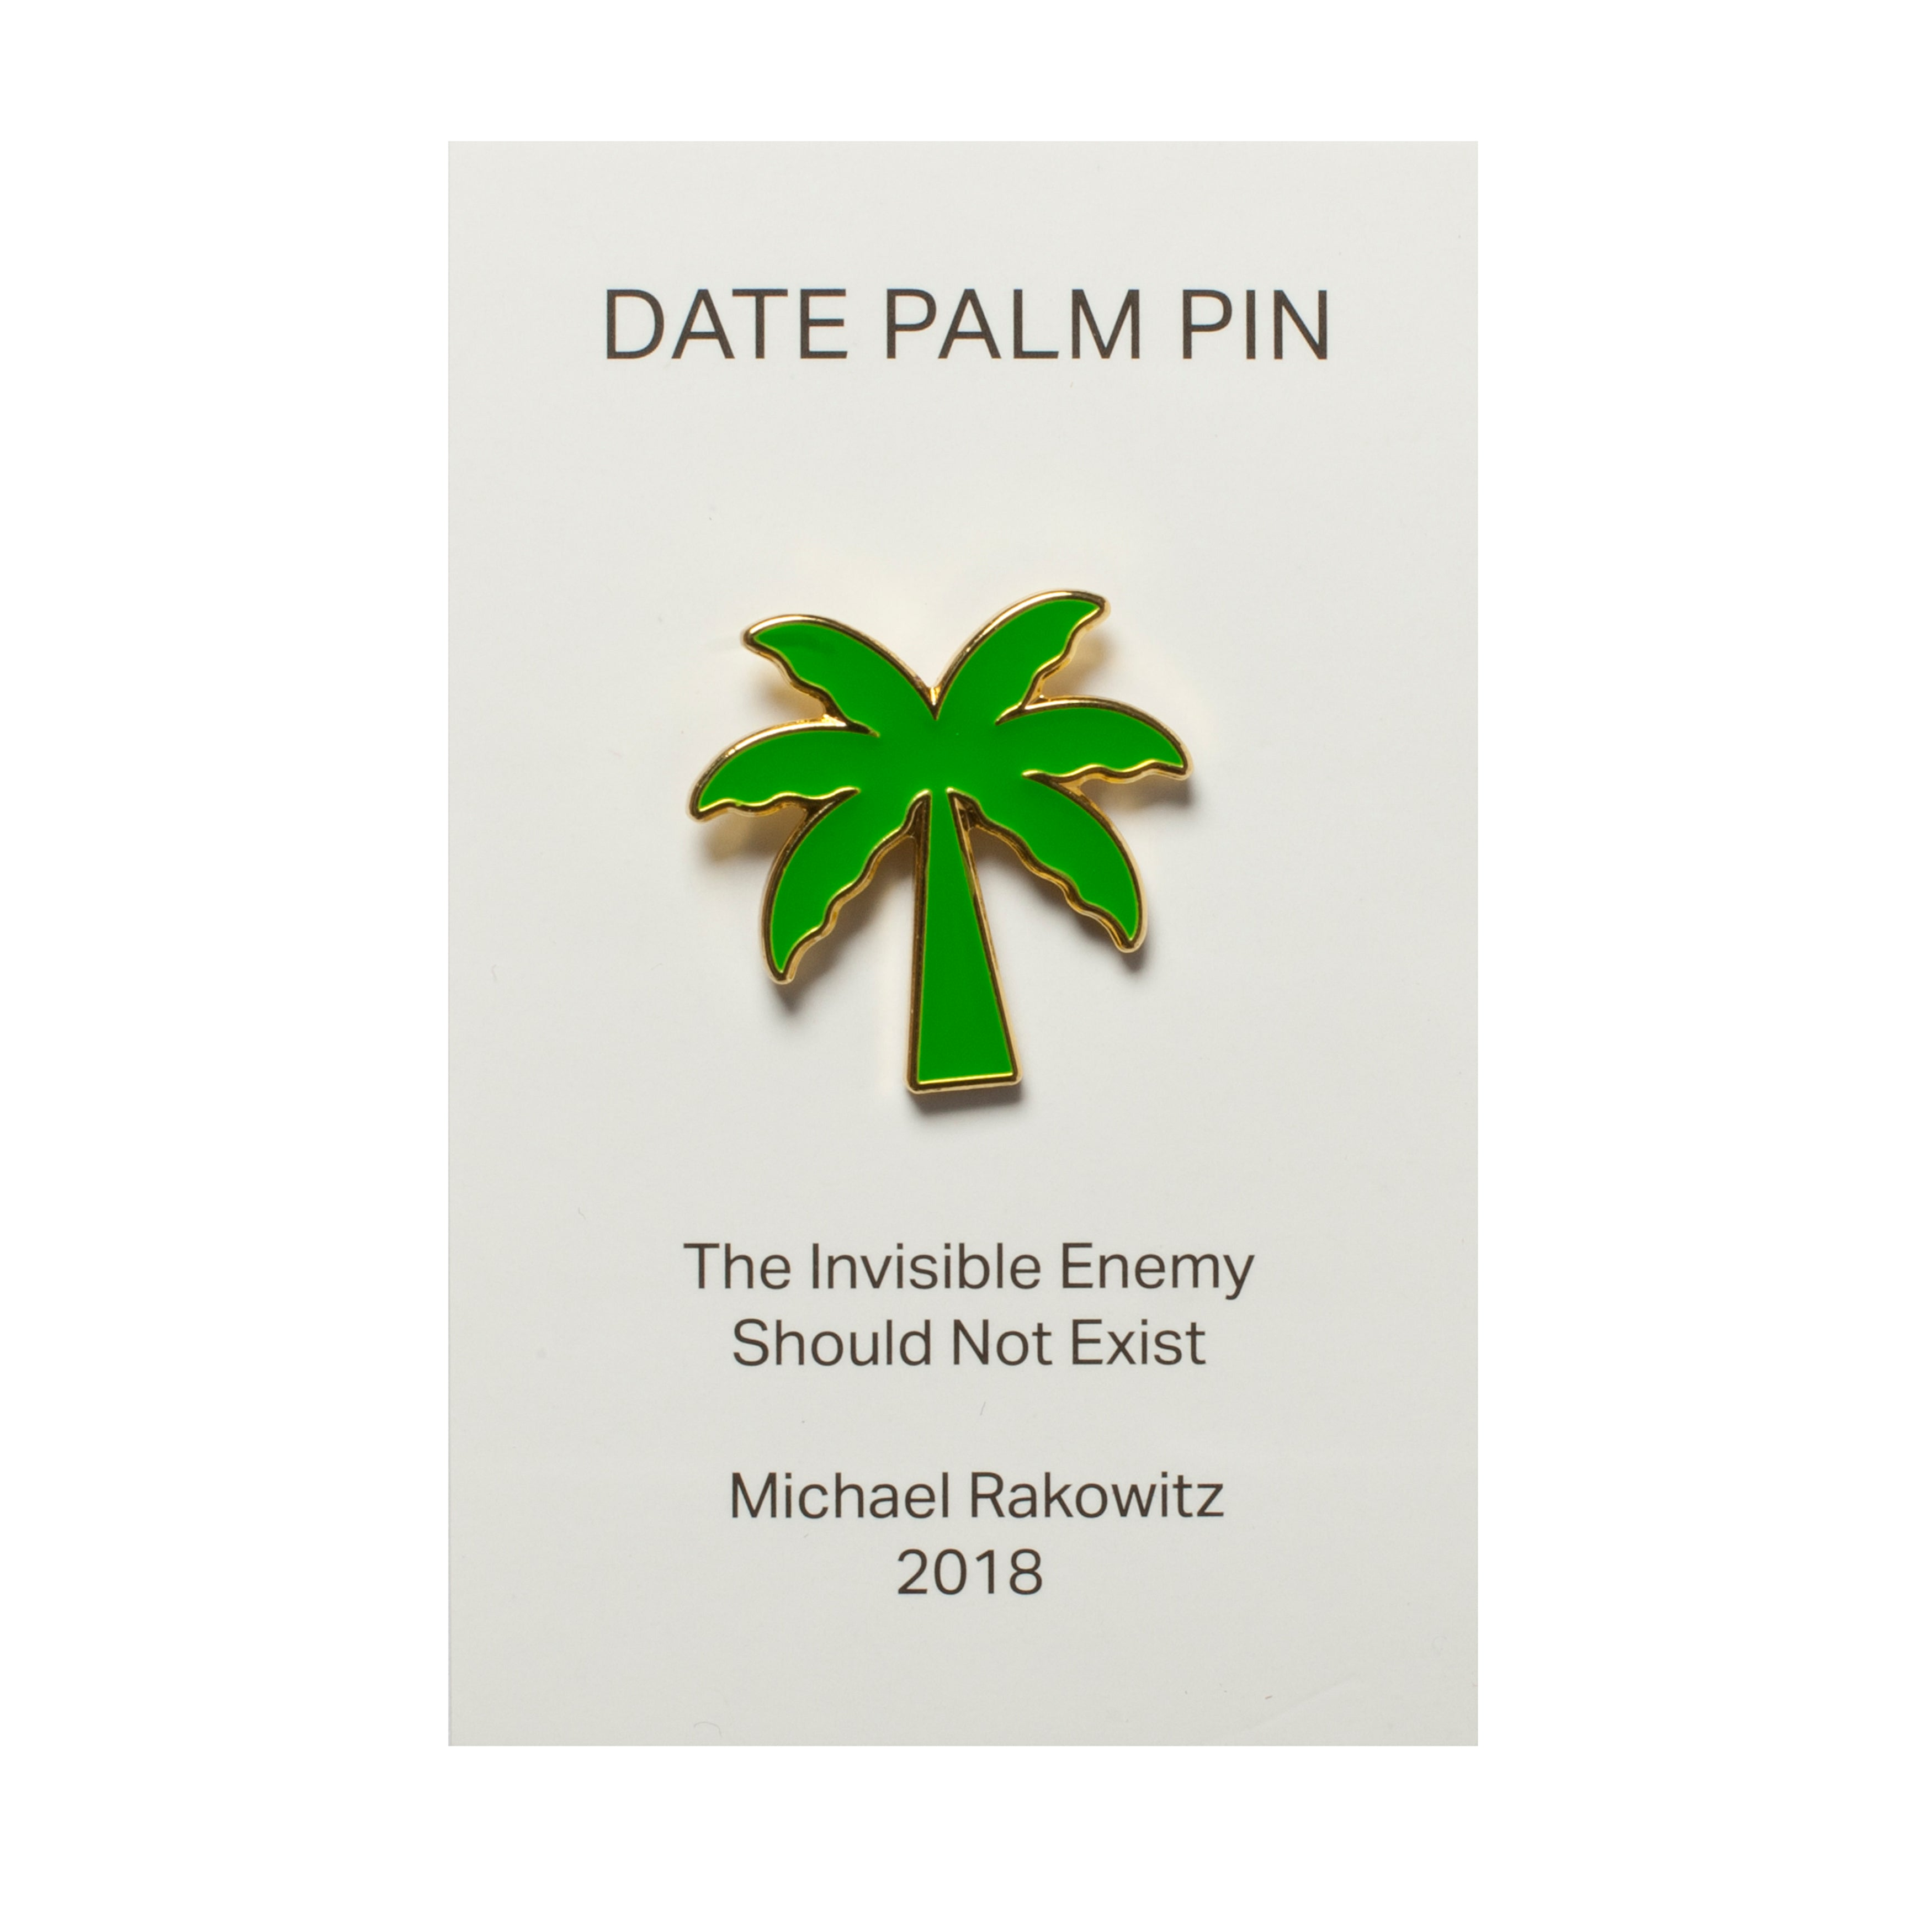 10 To 20 Page 2 Baltic Shop Pin Origami Dinosaurs List Online Dinosaur Diagrams Pictures On Mark Rakowitz Date Palm Enamel